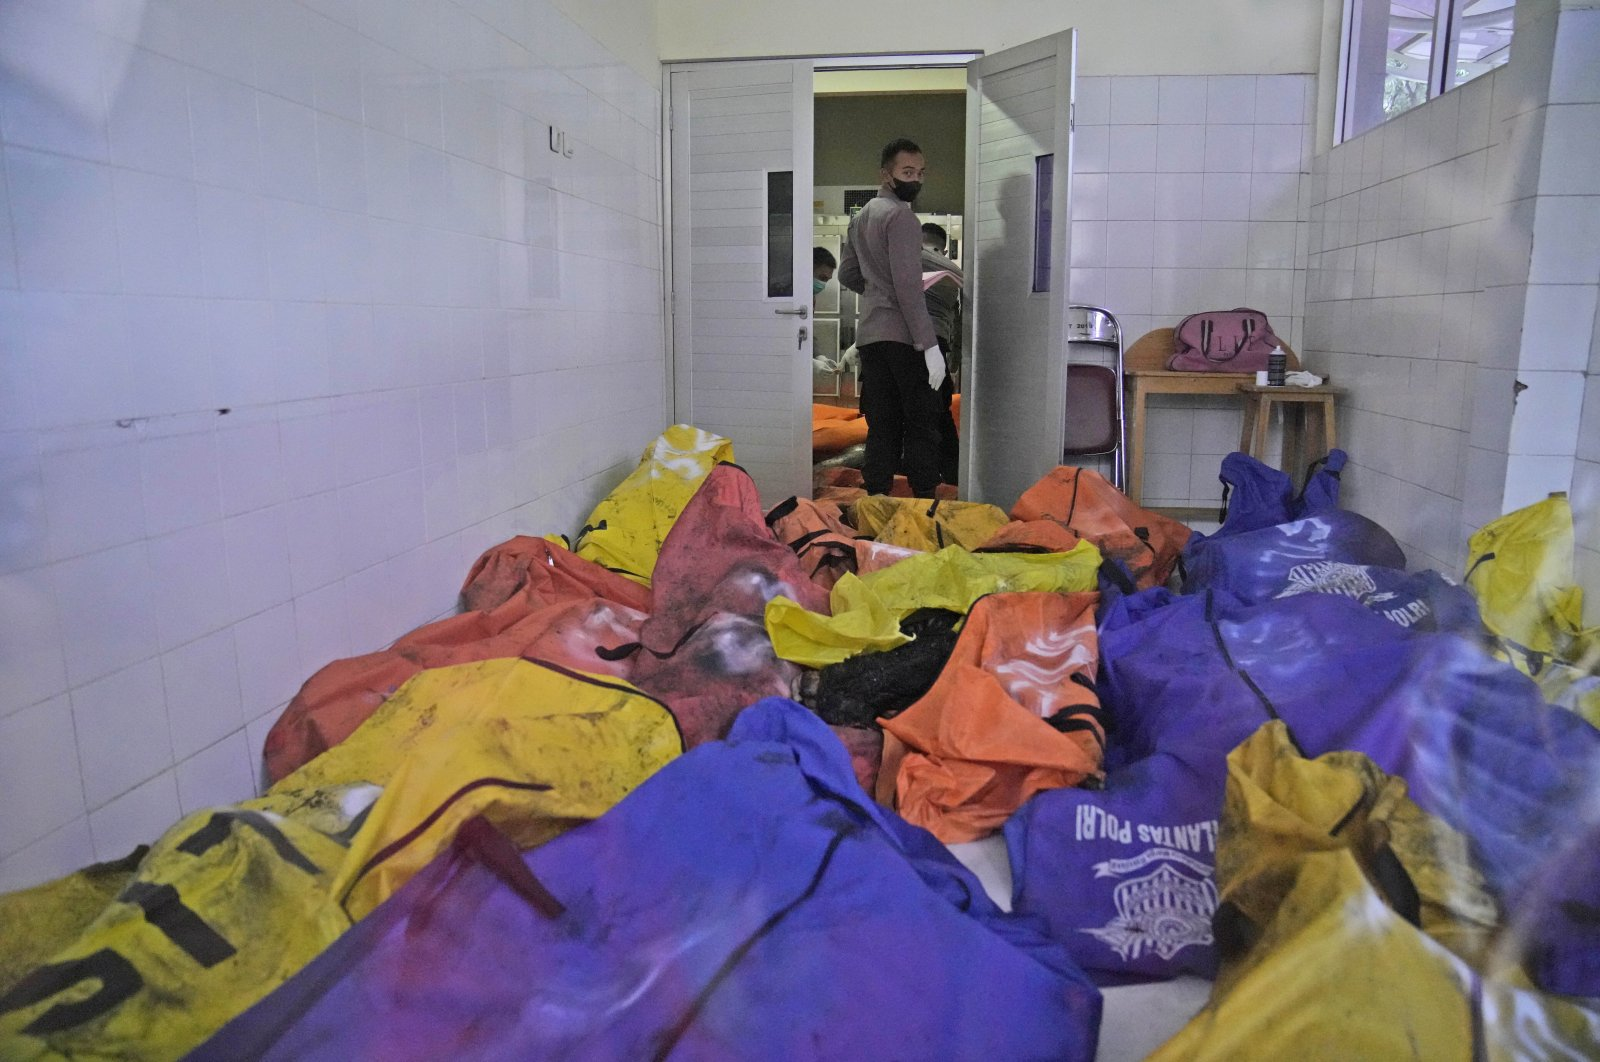 A police officer stands near body bags containing the bodies of the victims of a prison fire at the local hospital's morgue in Tangerang on the outskirts of Jakarta, Indonesia, Sept. 8, 2021. (AP Photo/Dita Alangkara)